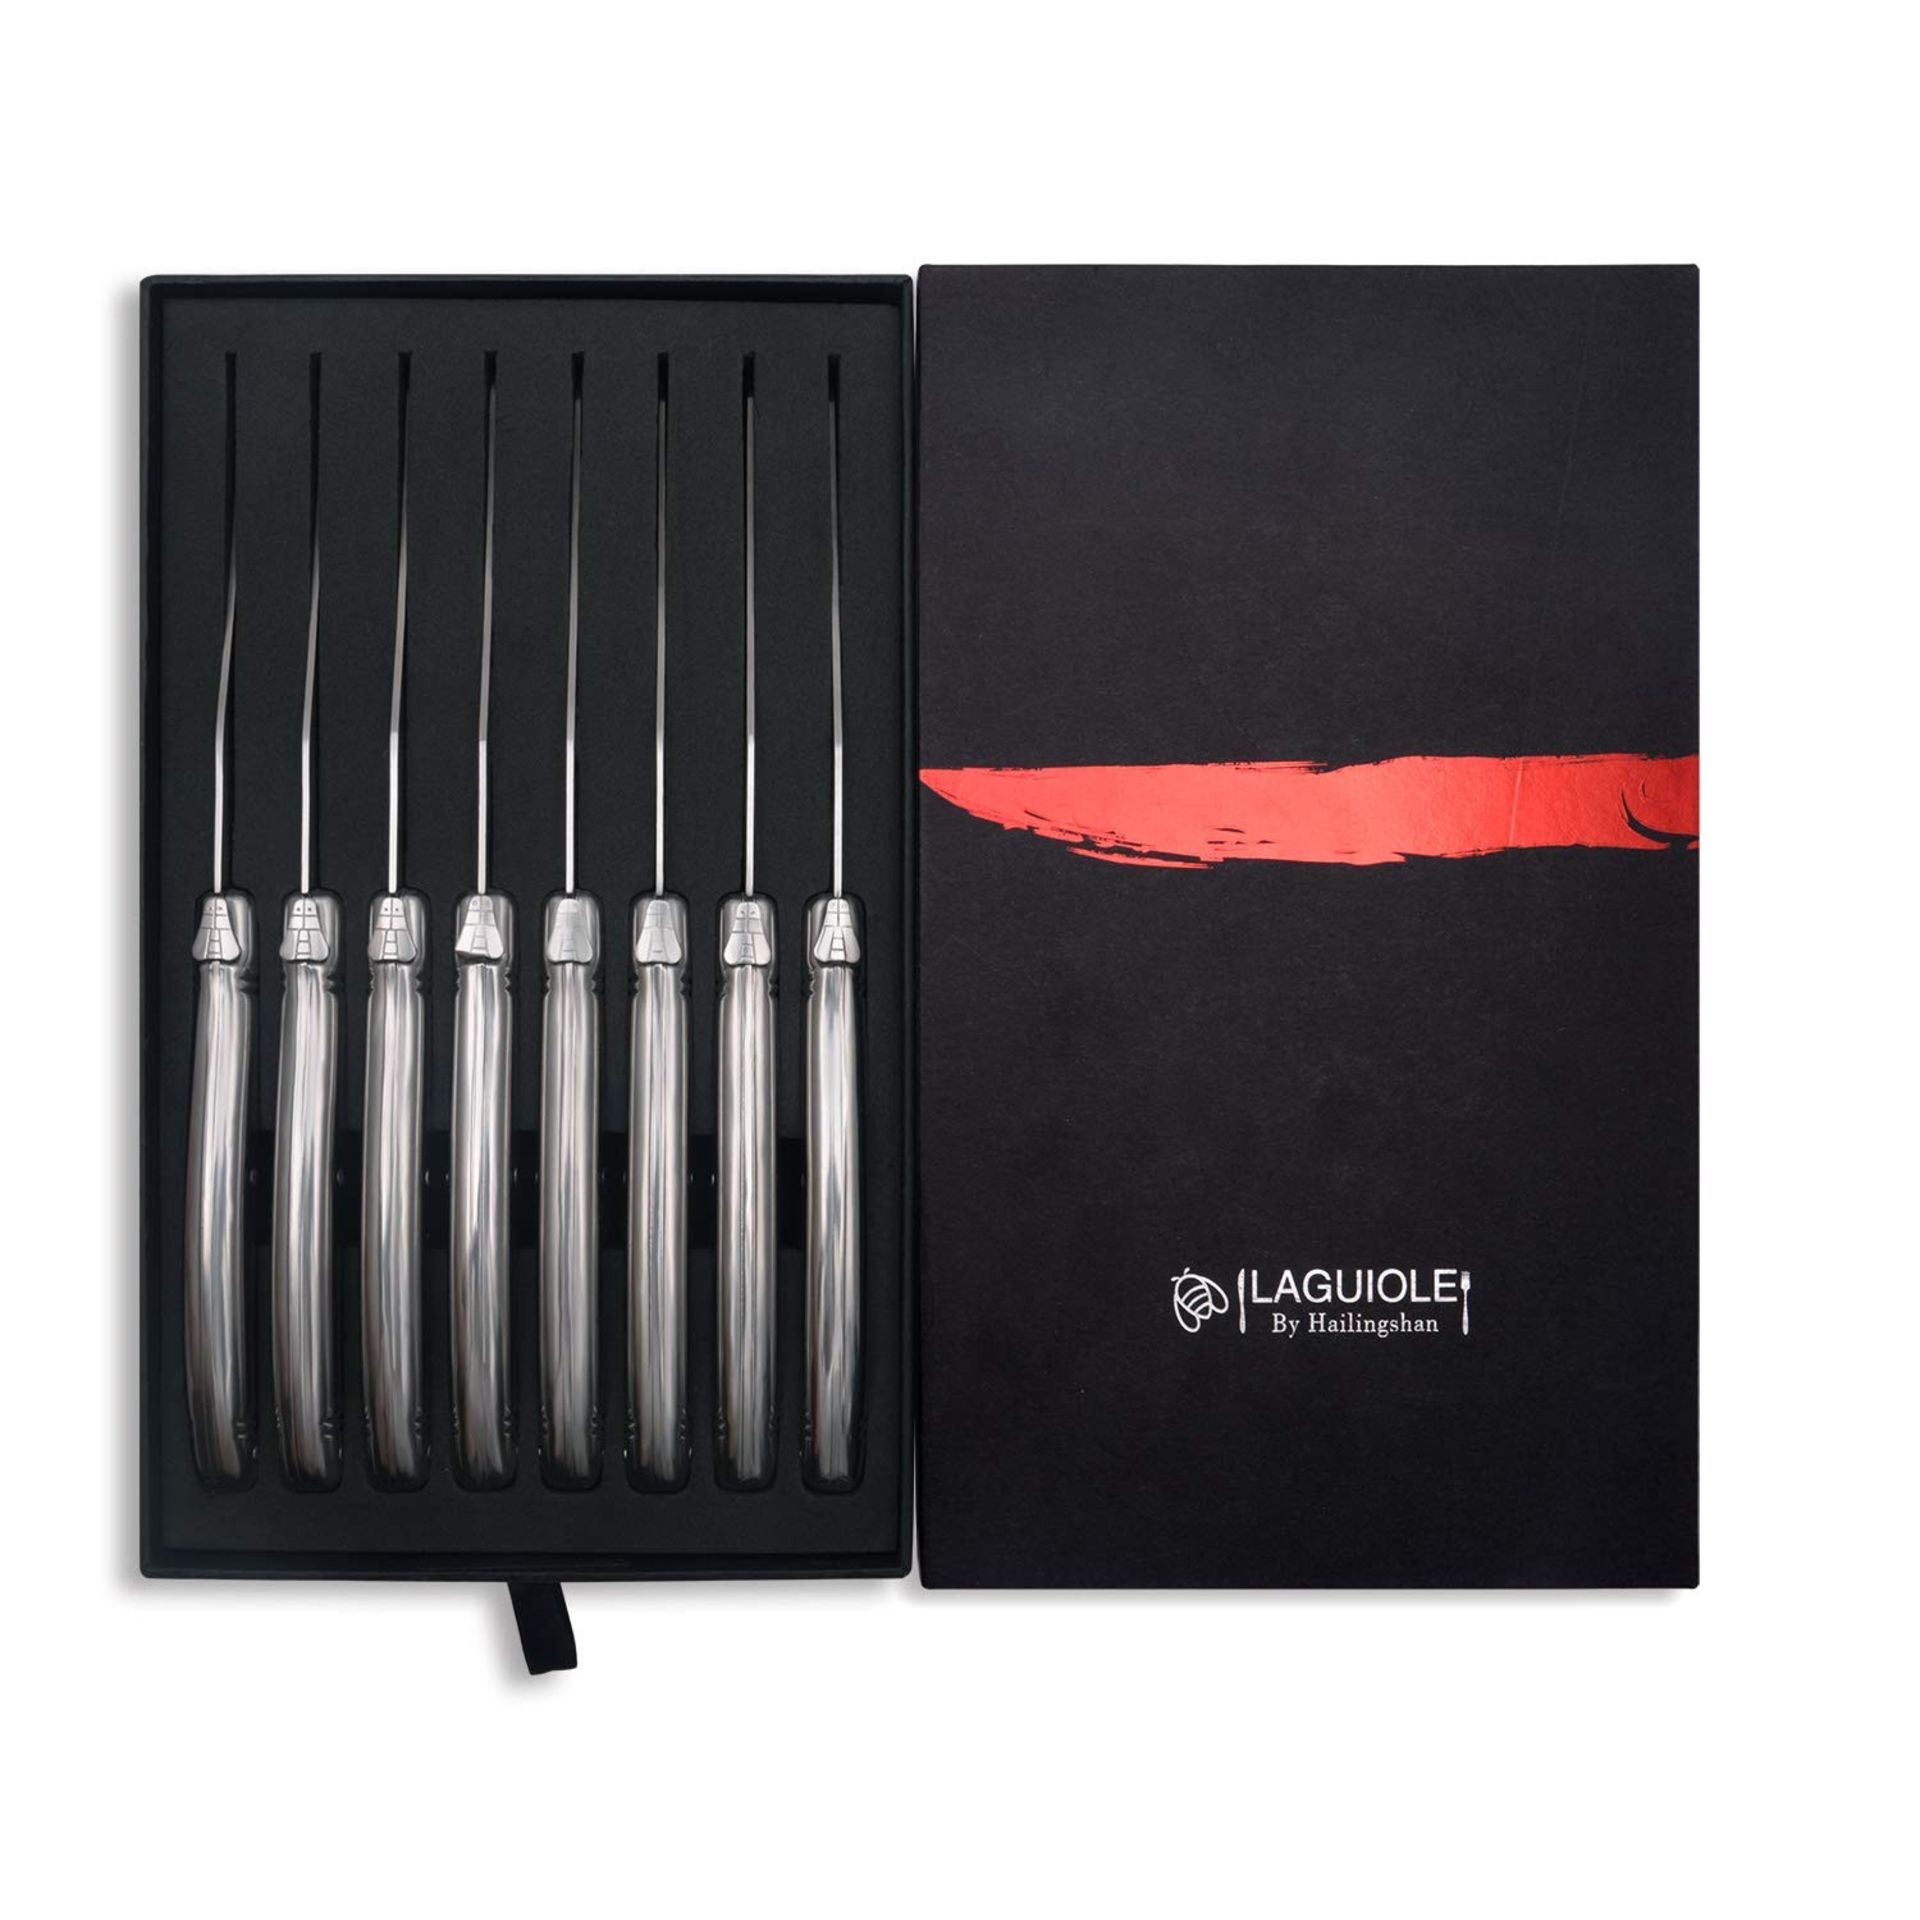 Lot 60 - Boxed Brand New Laguiloe Style By Hallingshan Set of 8 Steak Knifes RRP £49.99